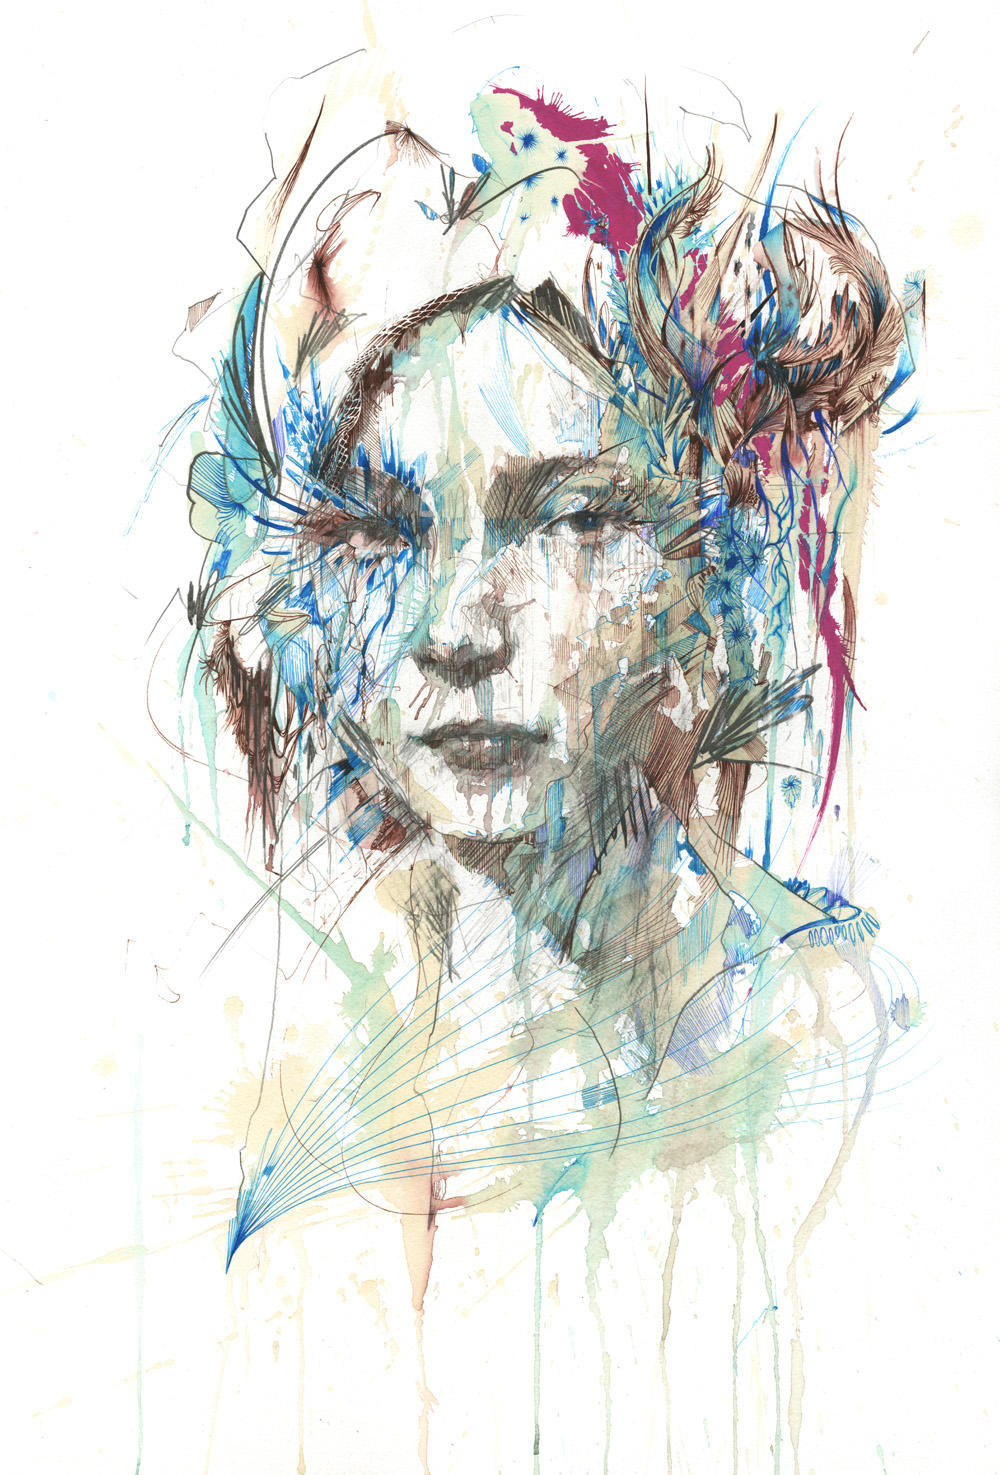 Unveil by Carne Griffiths